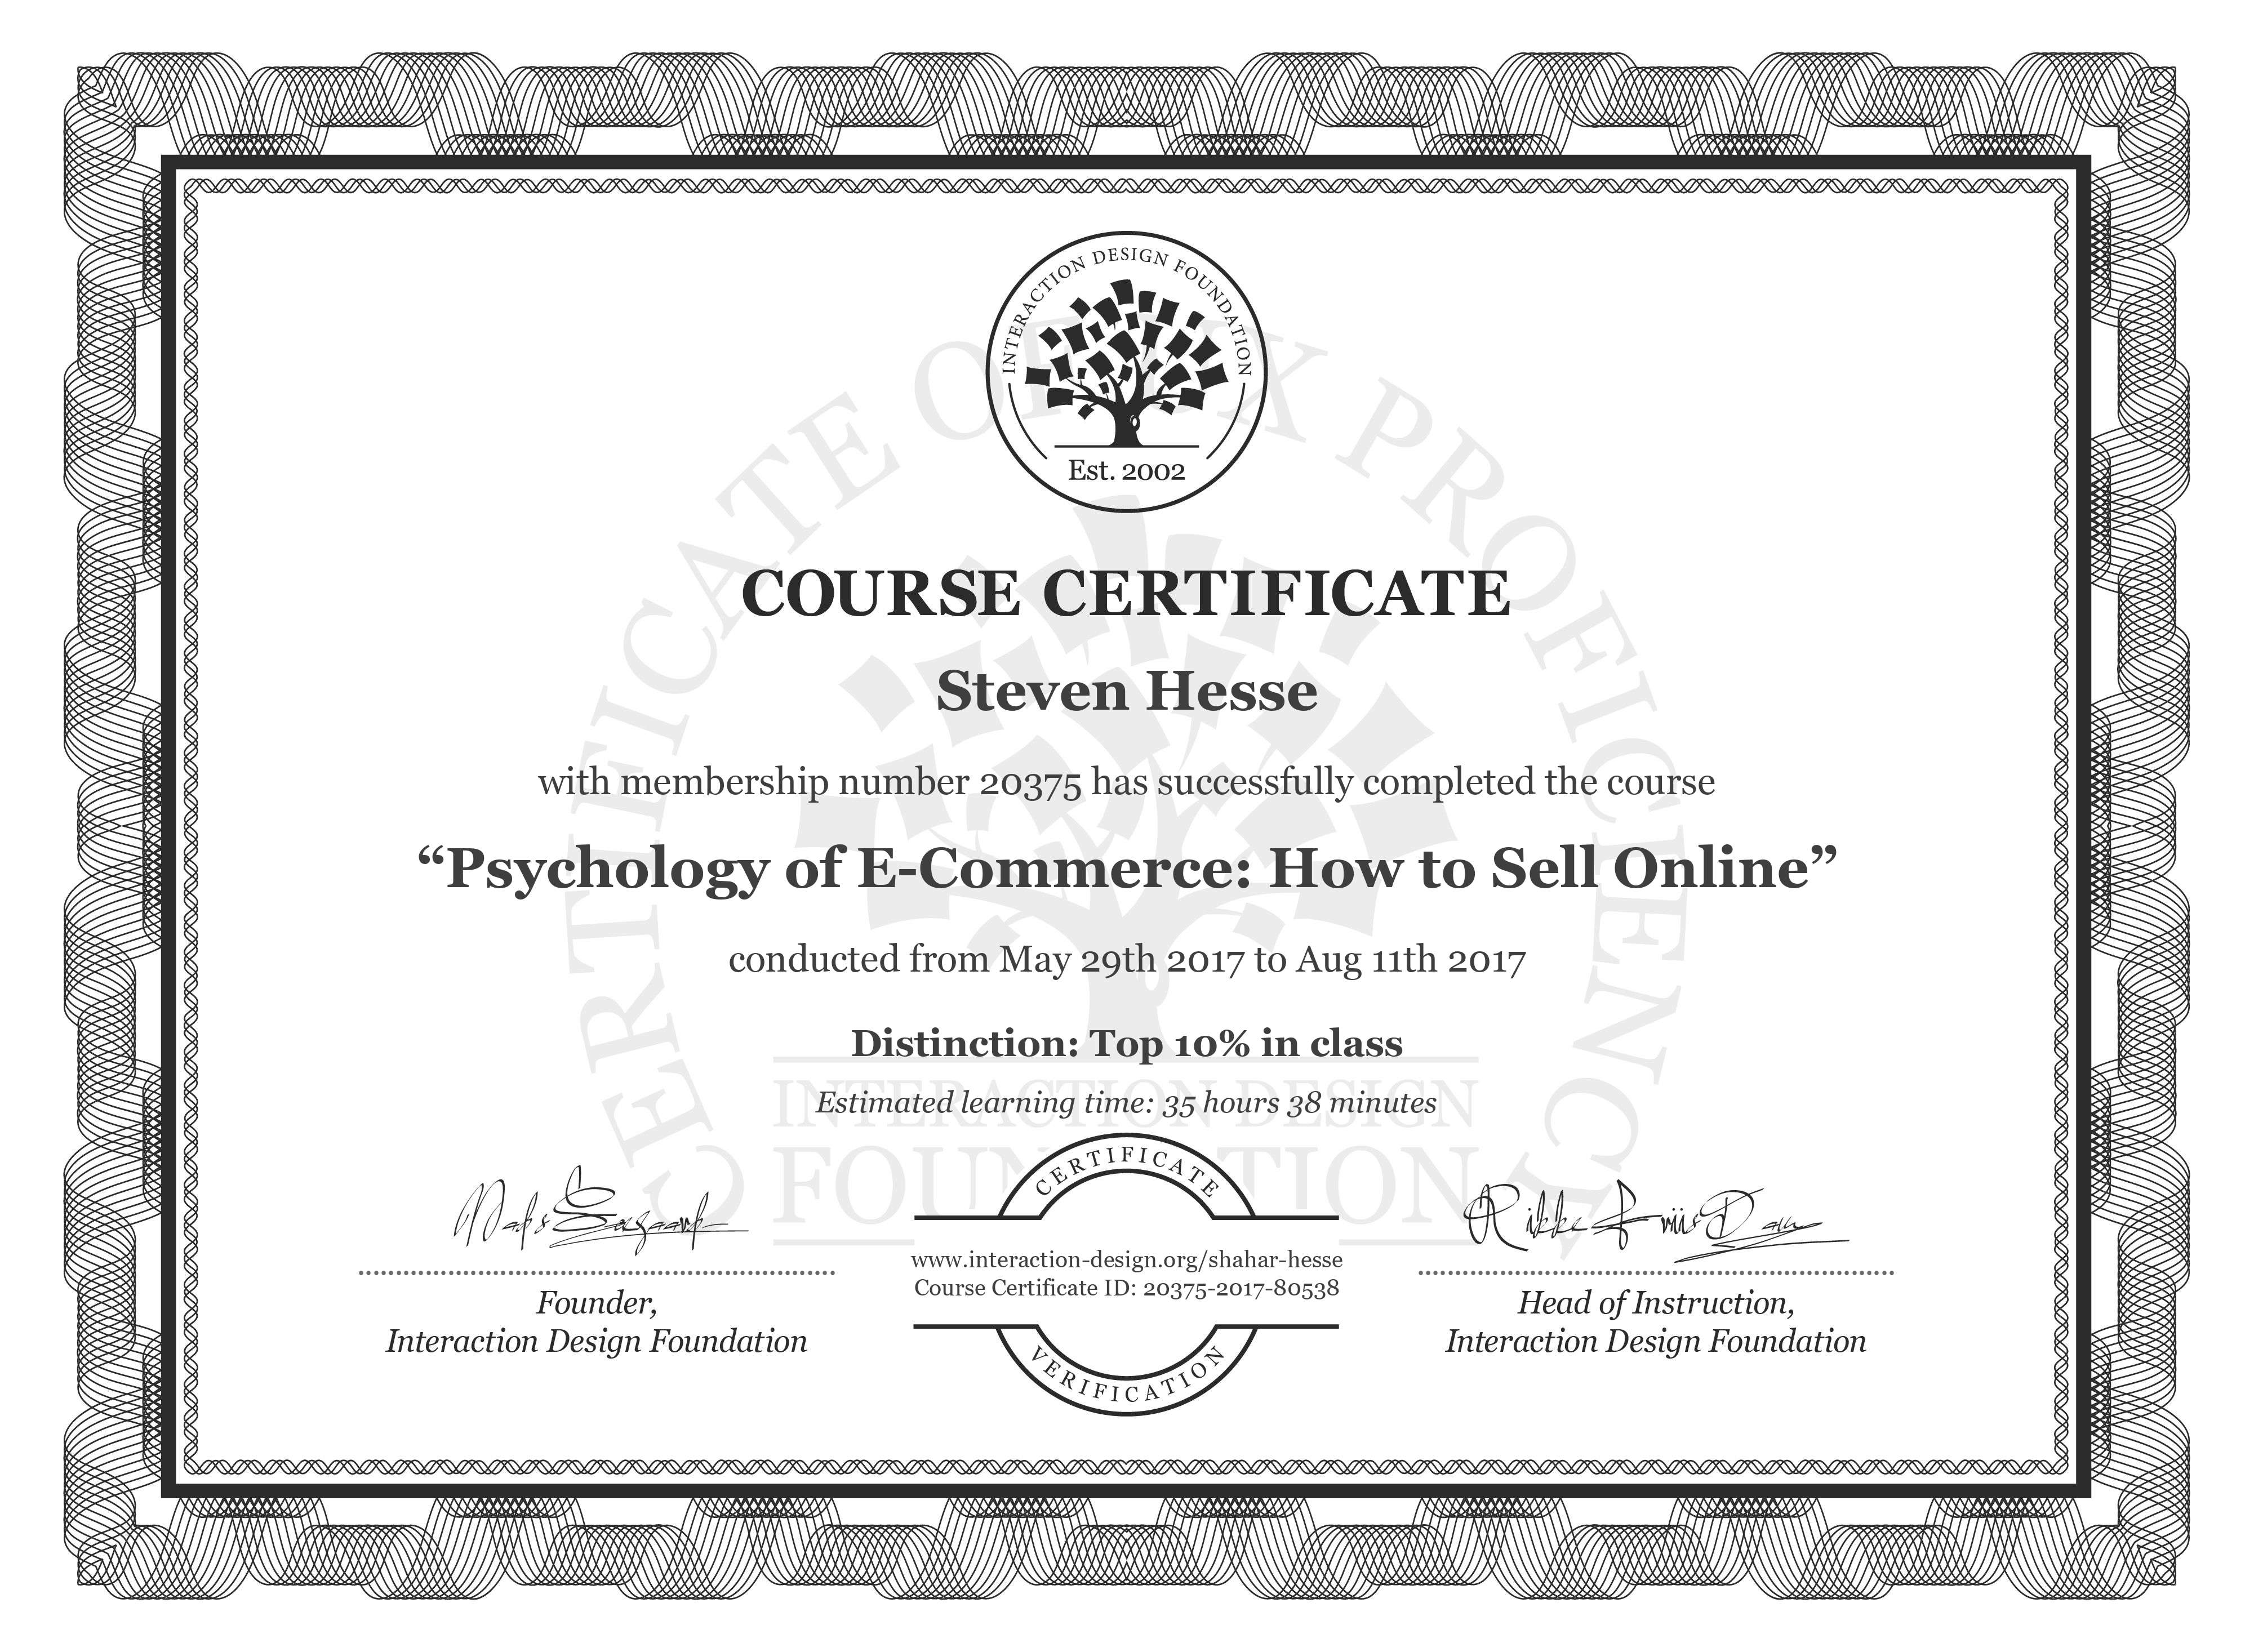 Steven Hesse's Course Certificate: Psychology of E-Commerce: How to Sell Online